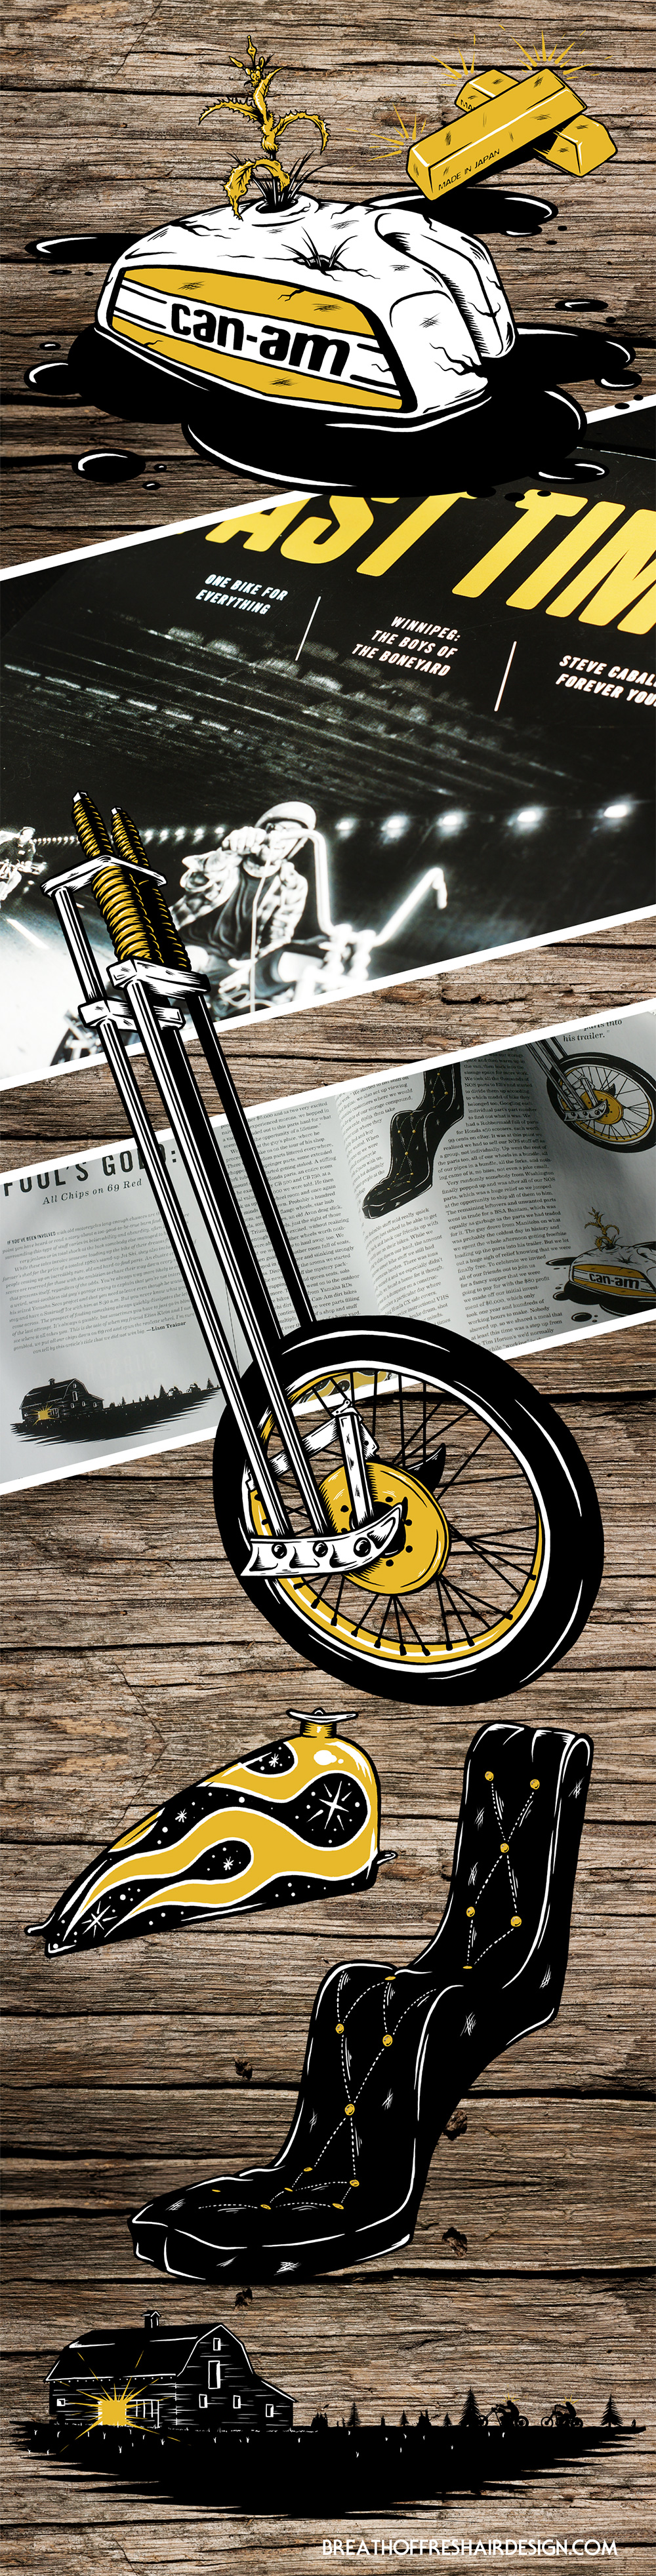 Fools Gold, Fast Times Magazine, Illustration, Motorcycles, Chopper, Springer Fork, Front End, Tire, Gas Tank, Drawing, Editorial Design, Graphic Design, Magazine